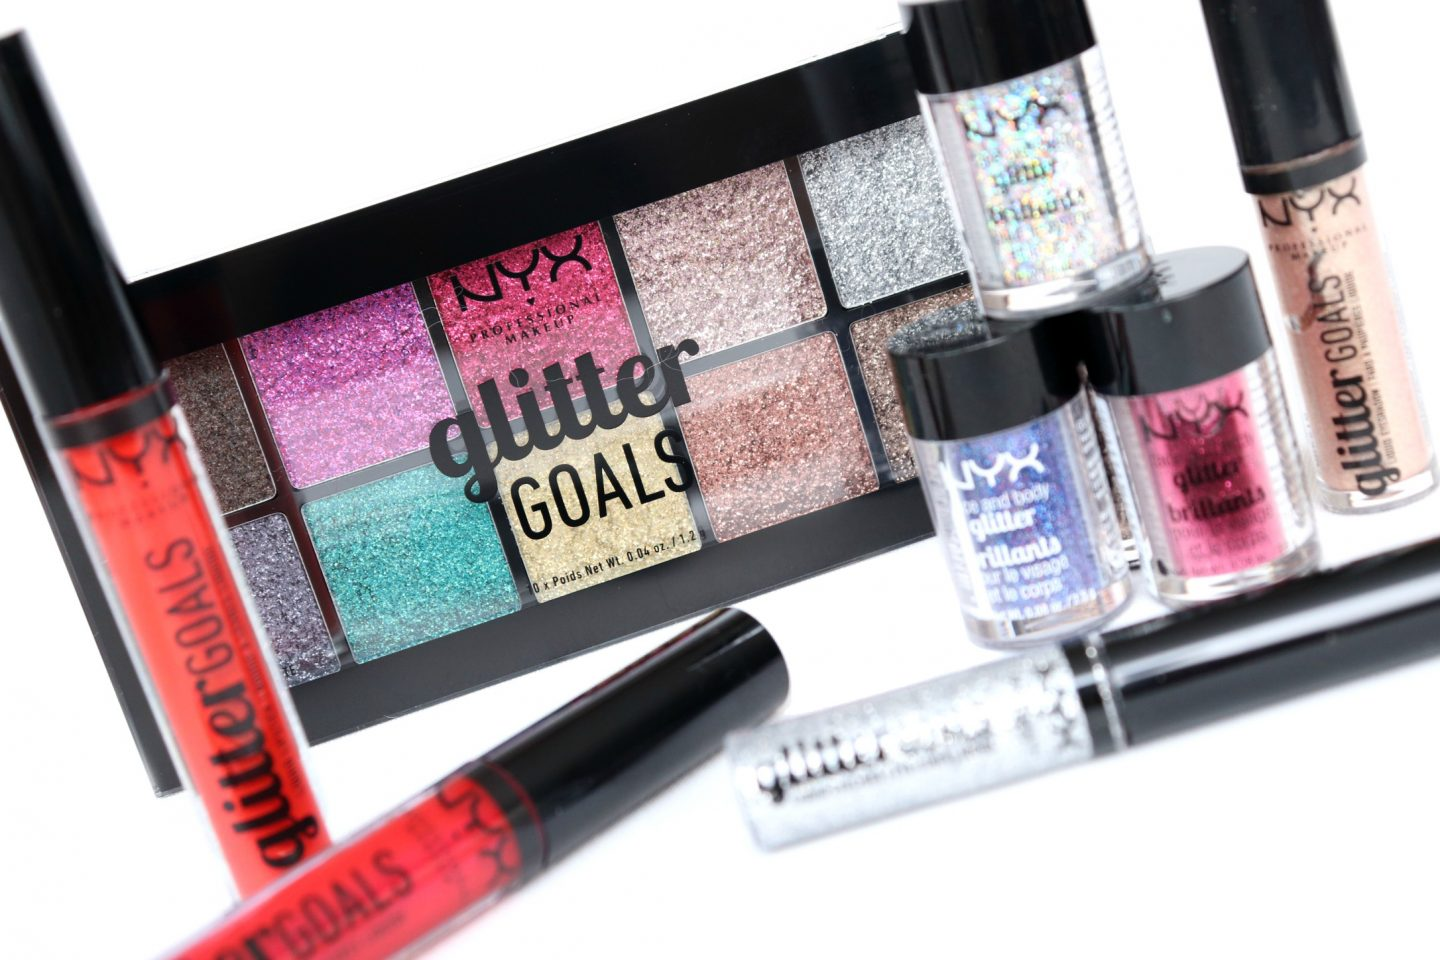 Sparkle with NYX Professional Makeup Glitter Goals